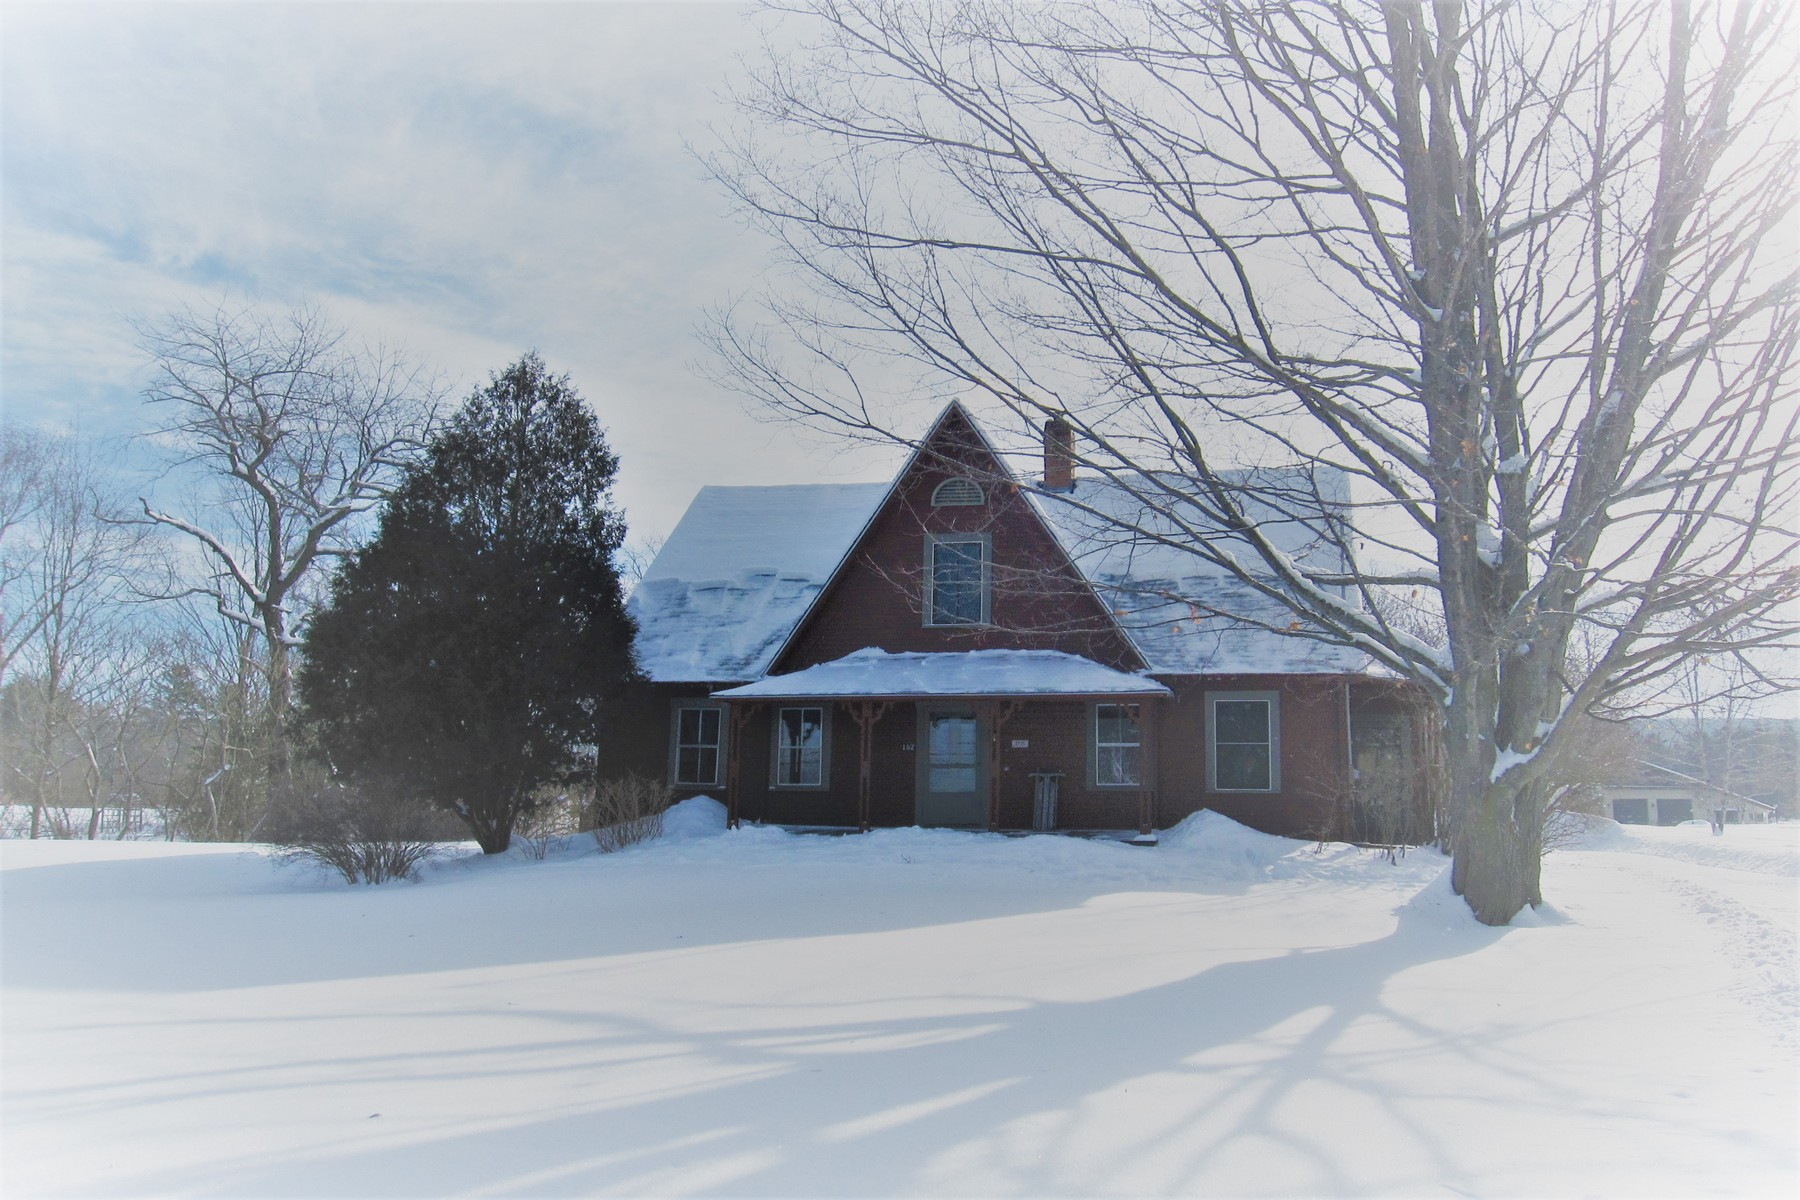 Single Family Home for Sale at 182 Dartmouth College Hwy, Haverhill Haverhill, New Hampshire, 03765 United States